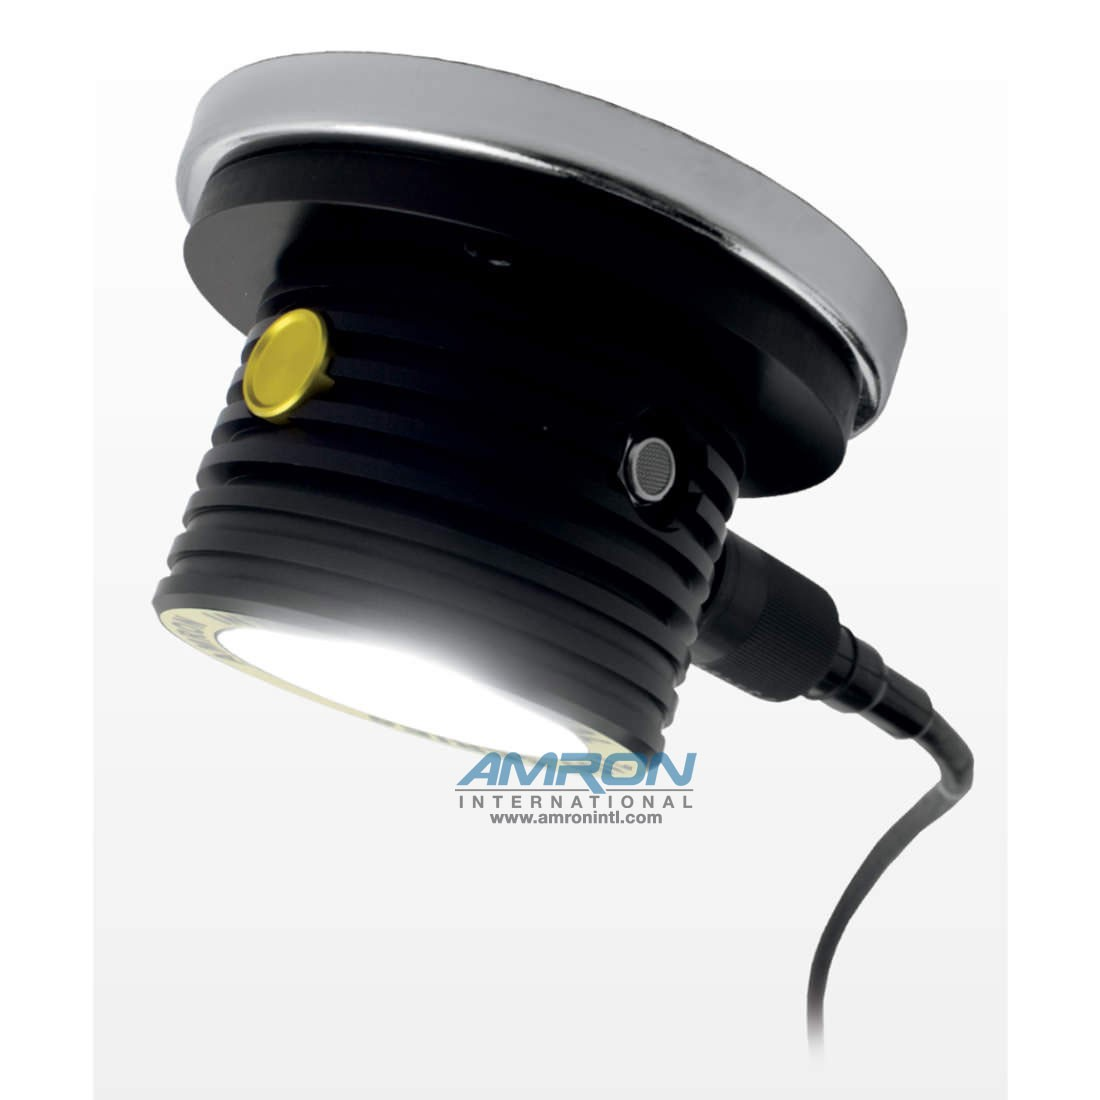 Amron International 7100 Series Chamber Light (Shown with Optional Magnetic Base) Provides 6 Levels of Light